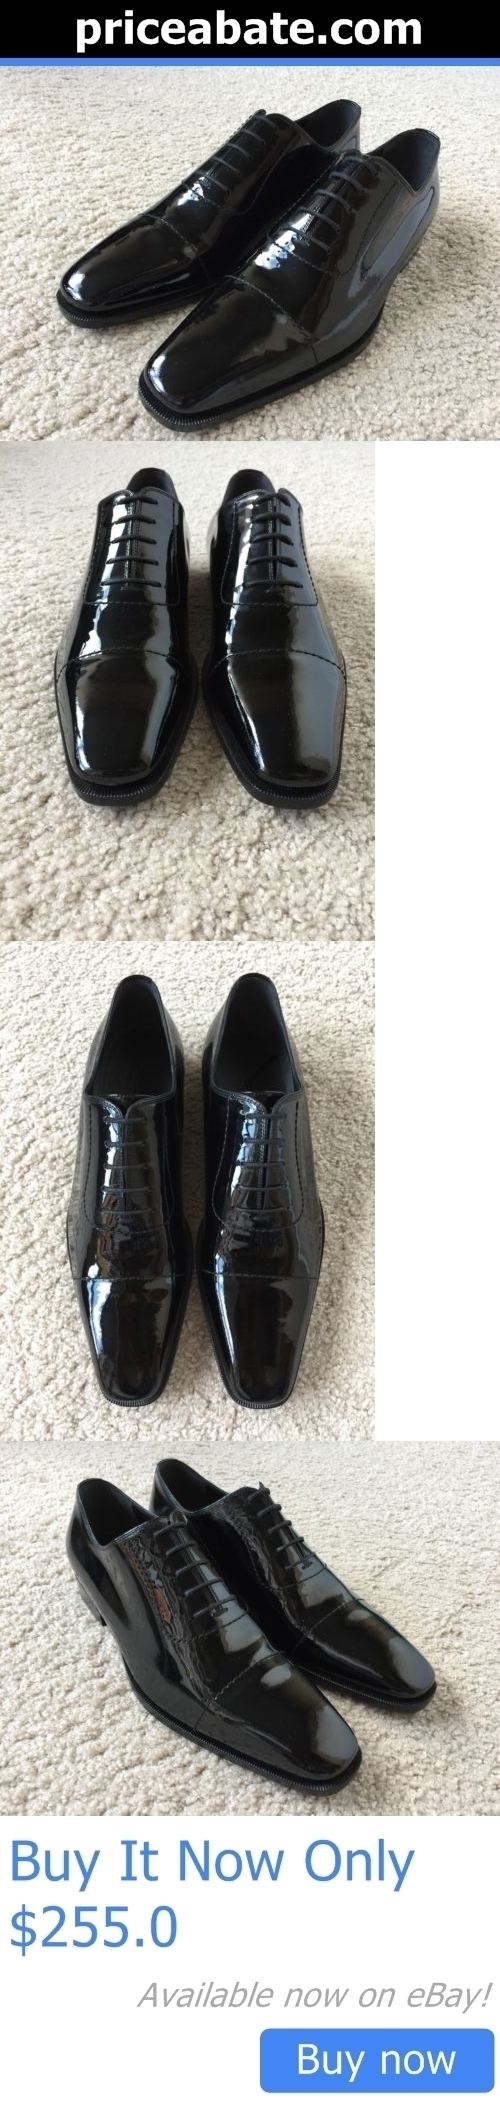 Men Shoes: Gucci Mens New Black Patent Leather Oxford Dress Shoes 9D BUY IT NOW ONLY: $255.0 #priceabateMenShoes OR #priceabate